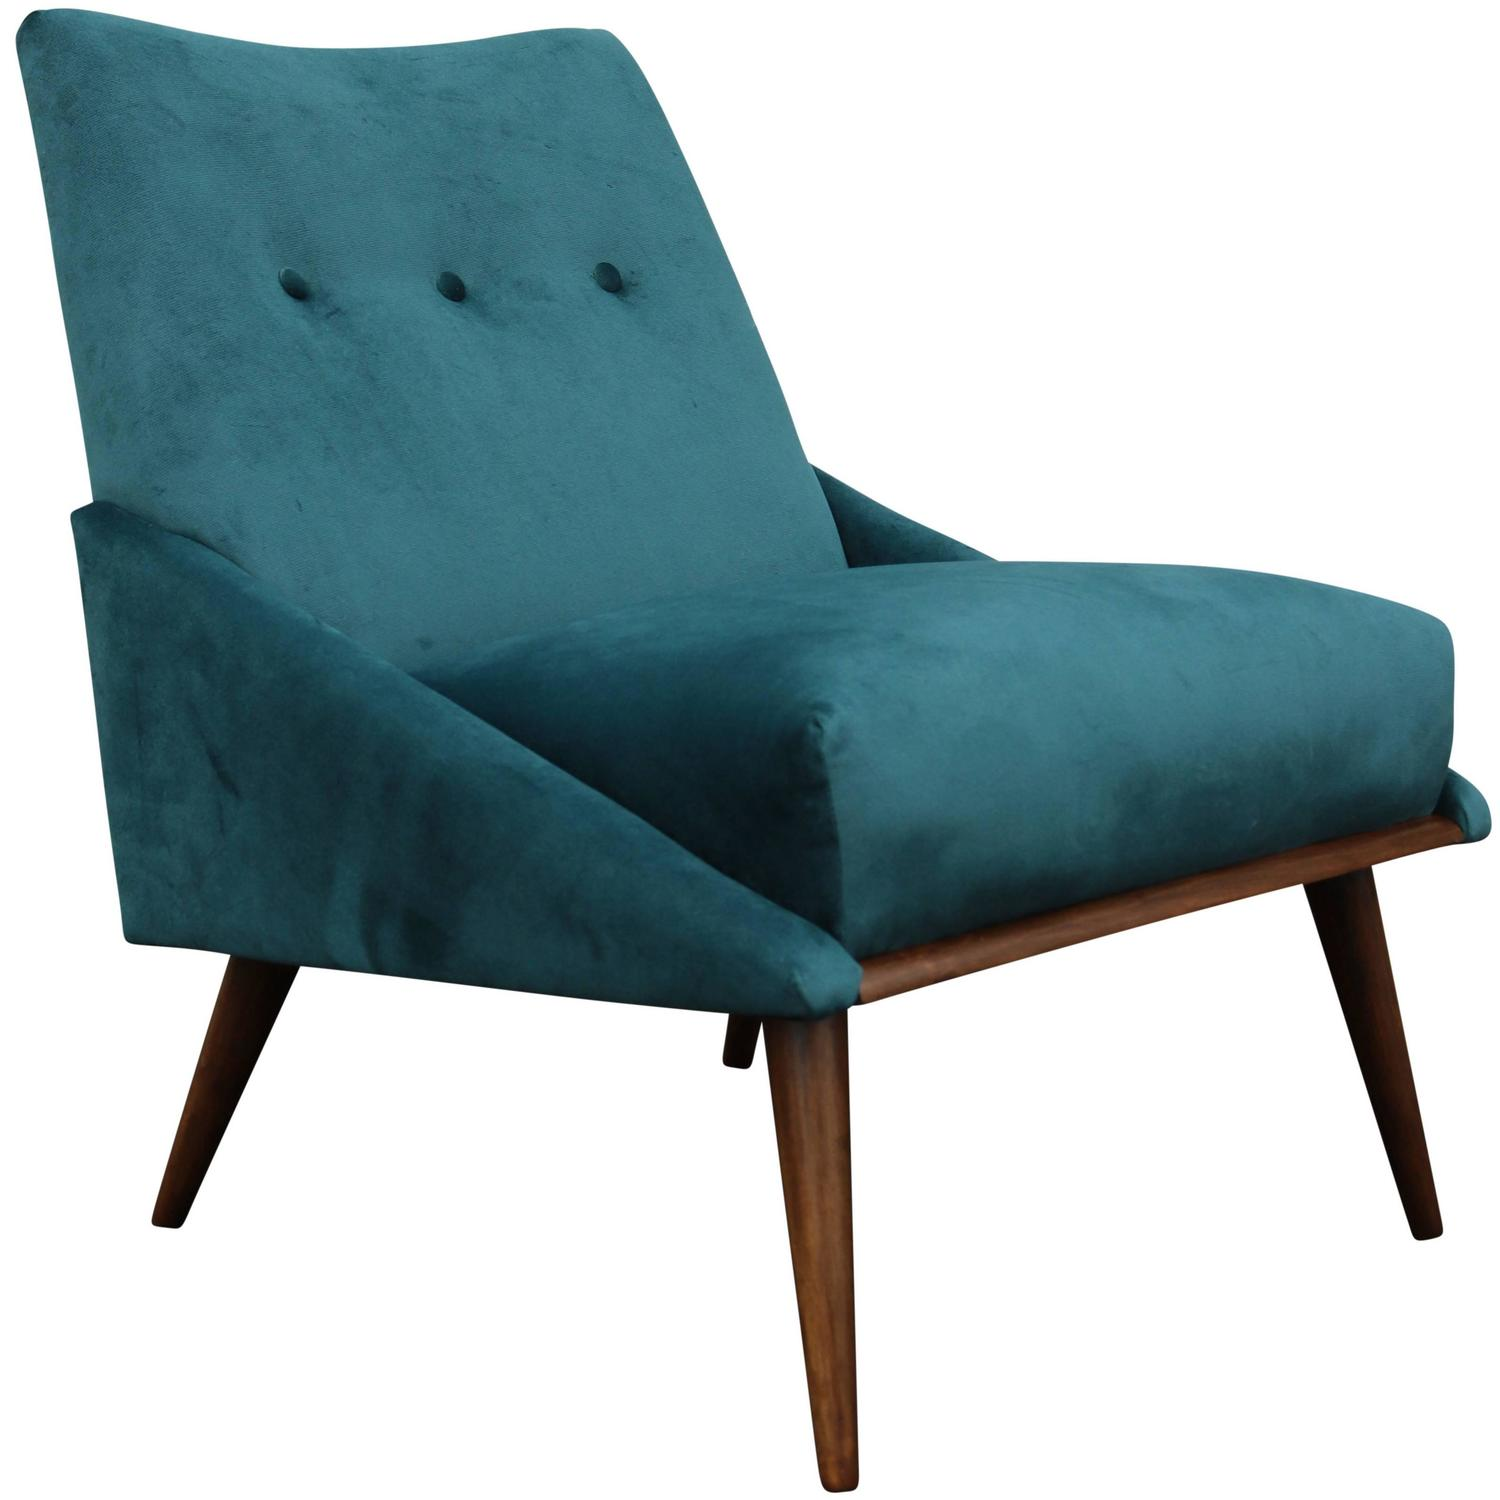 Peacock velvet mid century modern chair at 1stdibs for Mid century modern armchairs